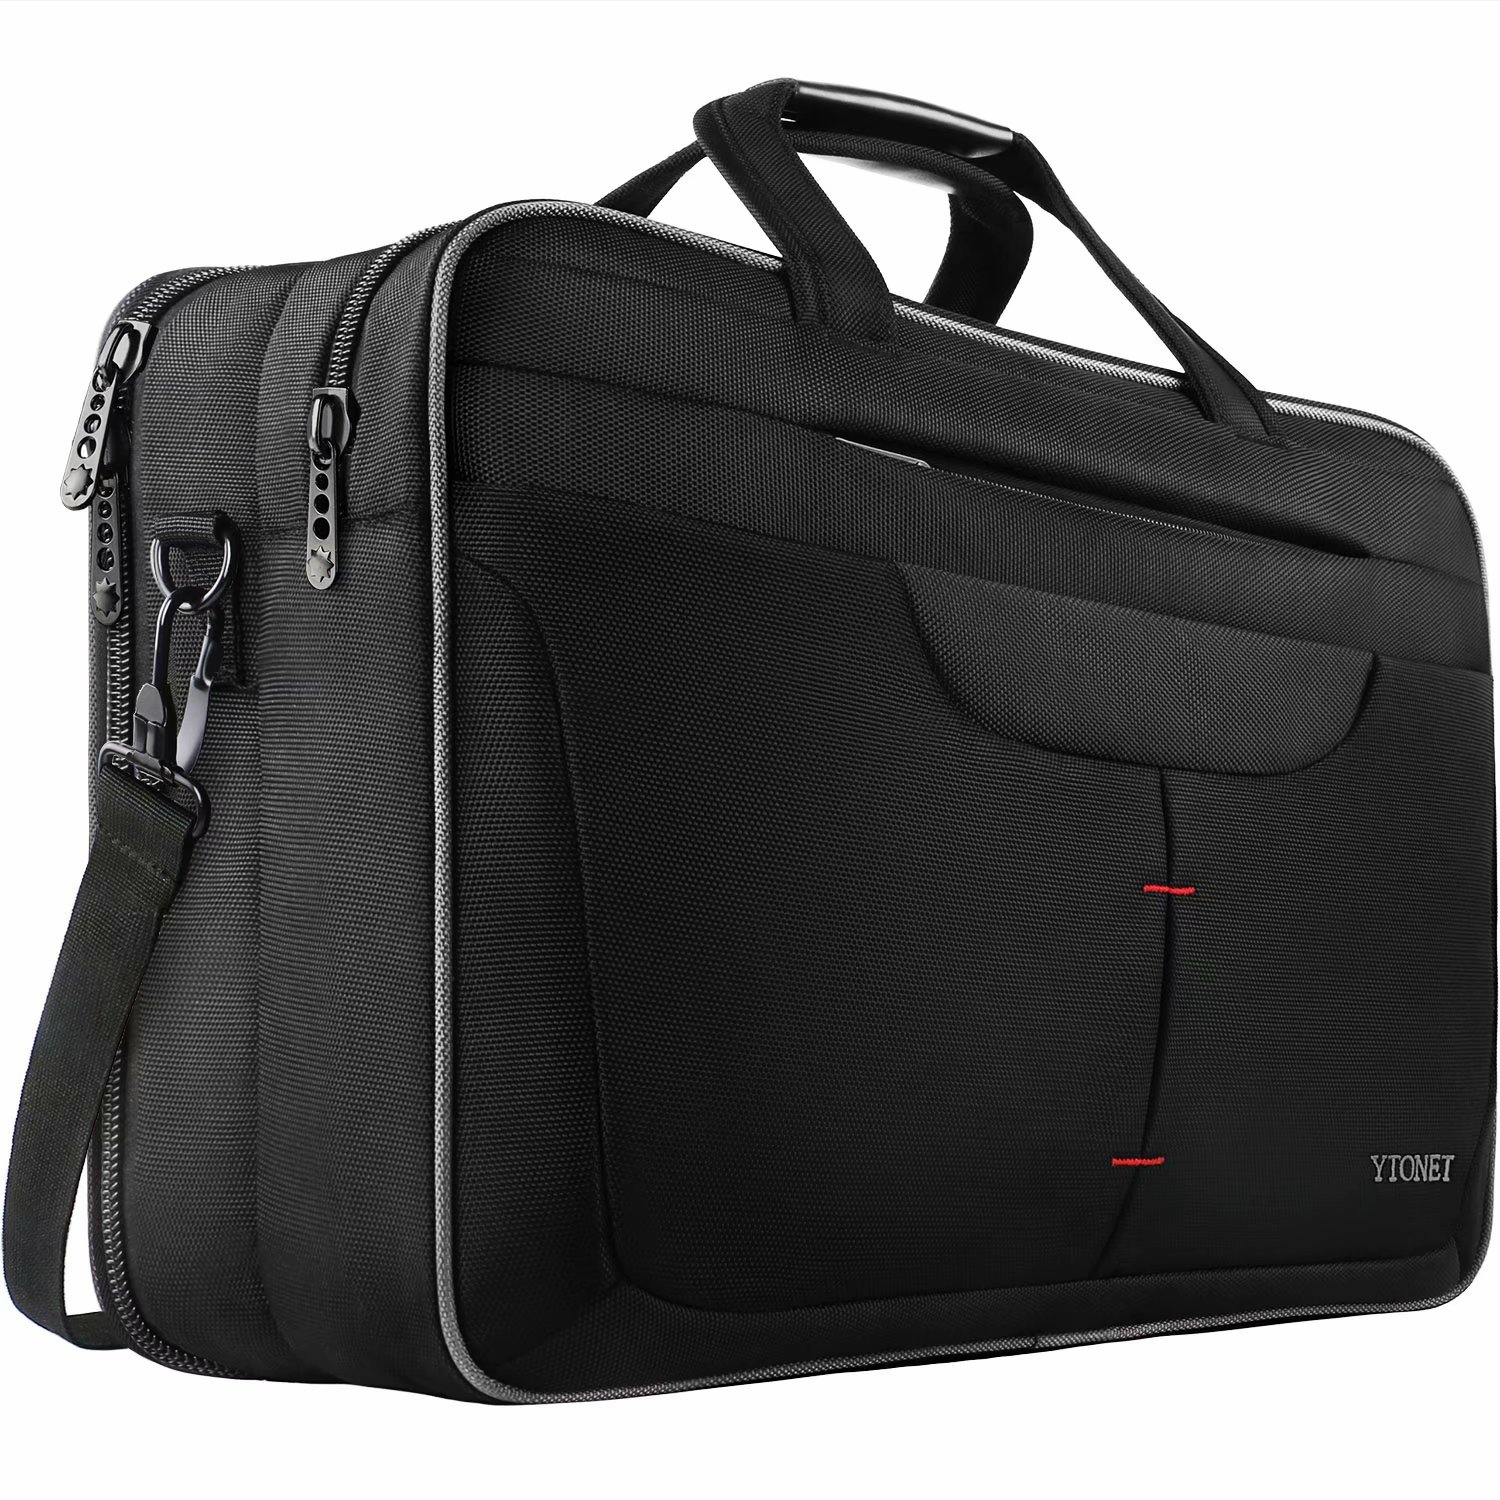 18 Inch Laptop Bag, Extra Large Briefcase for Men Women, Expandable Multifunctional Laptop Case, Water Resistant Computer Bags Fit 18 17.3 Inches Gaming Laptop, Notebook for Business Travel, Black Cafeleo